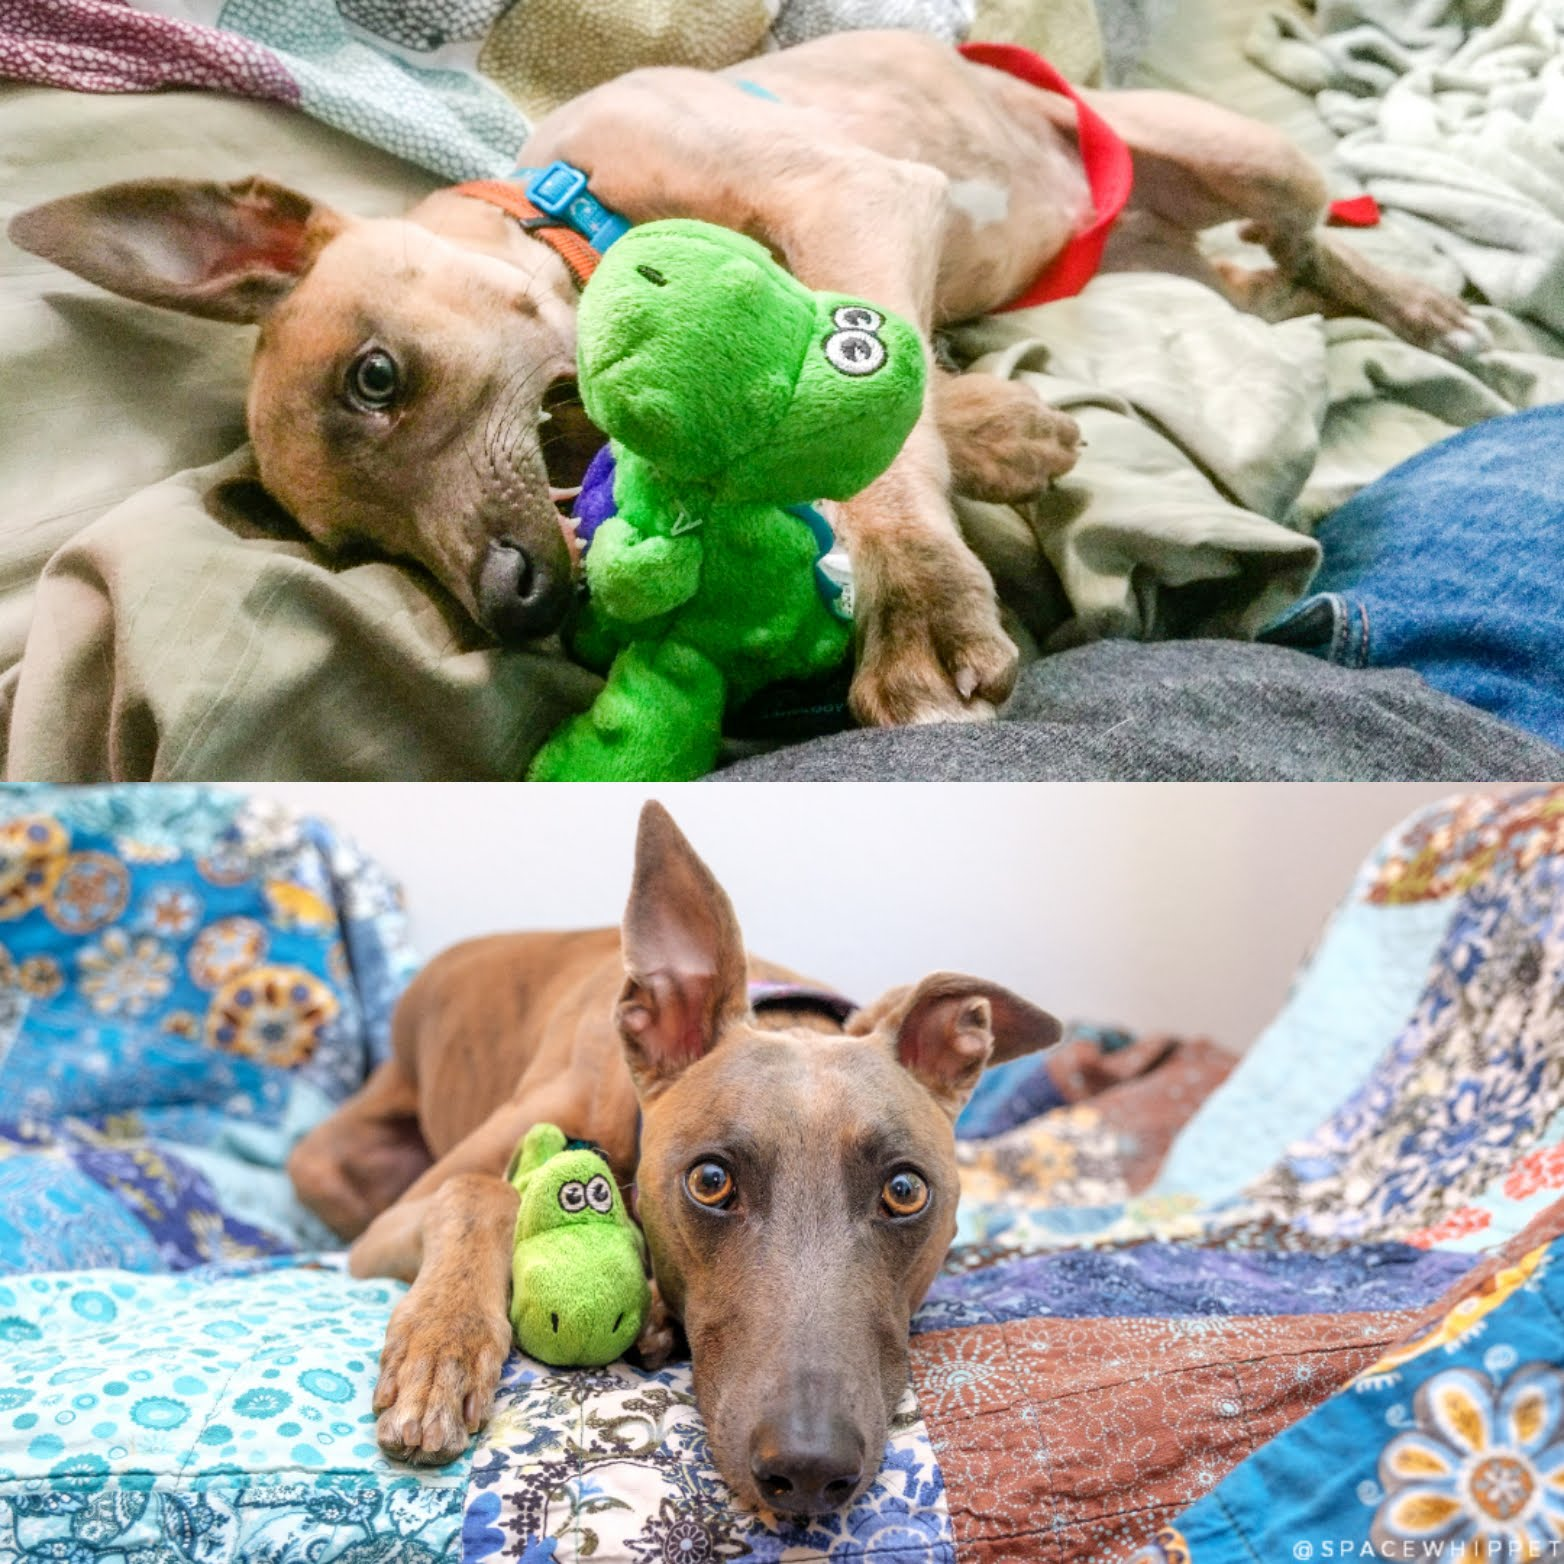 Kuiper as a baby biting his alligator toy vs. Kuiper as an adult snuggling with his alligator toy